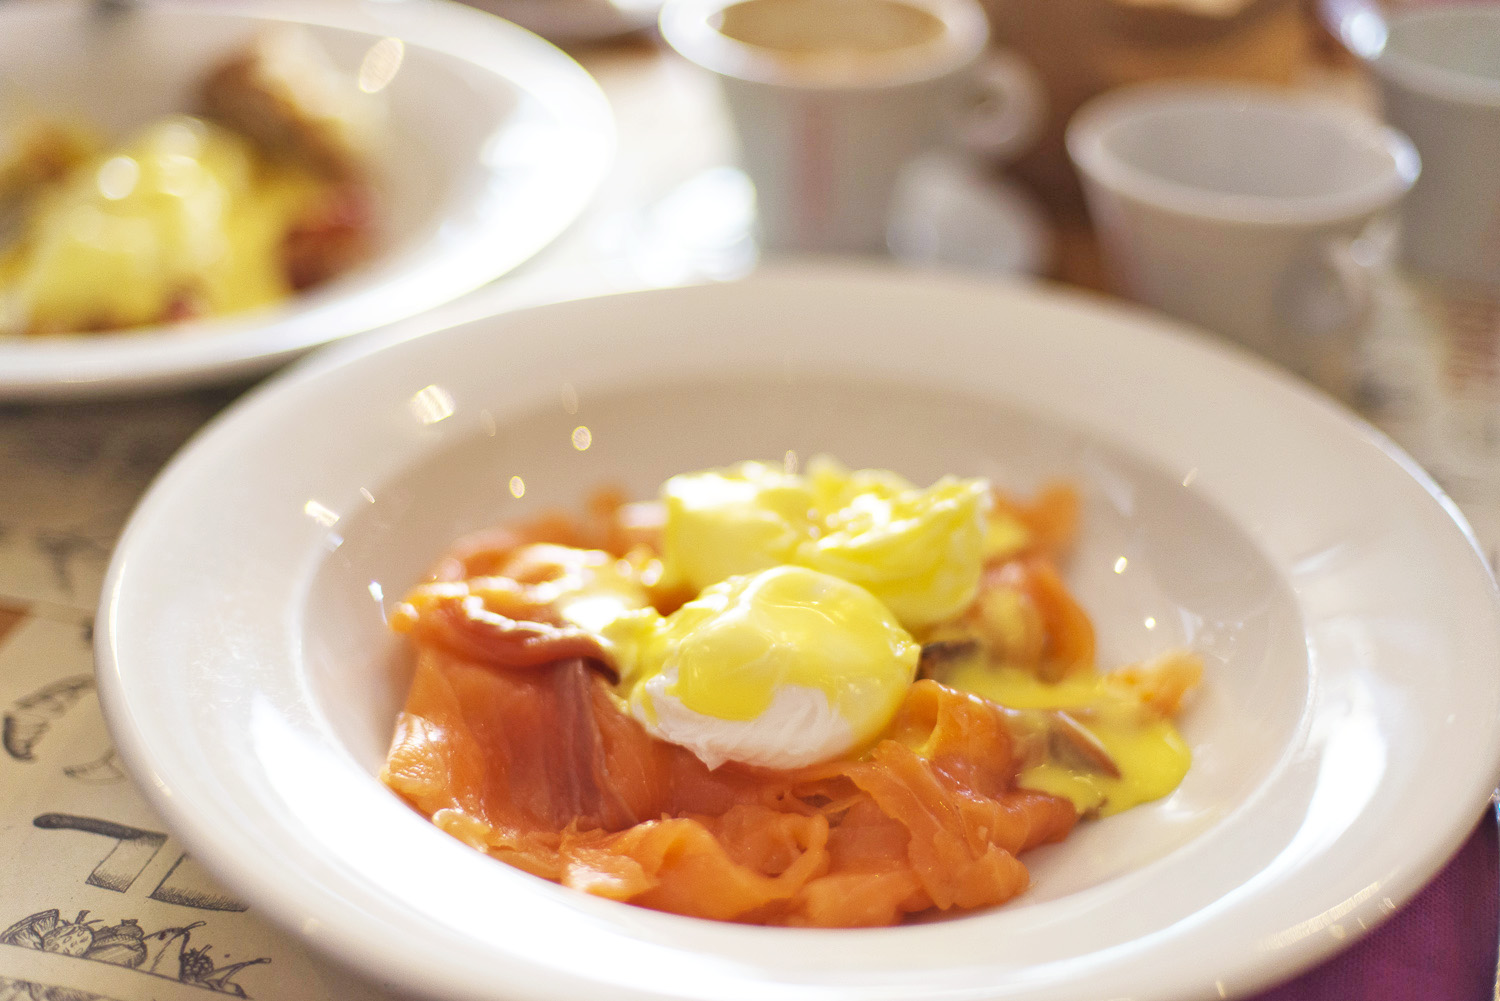 Taglio emporio brunch and speciality coffee milan for Best brunch in milan